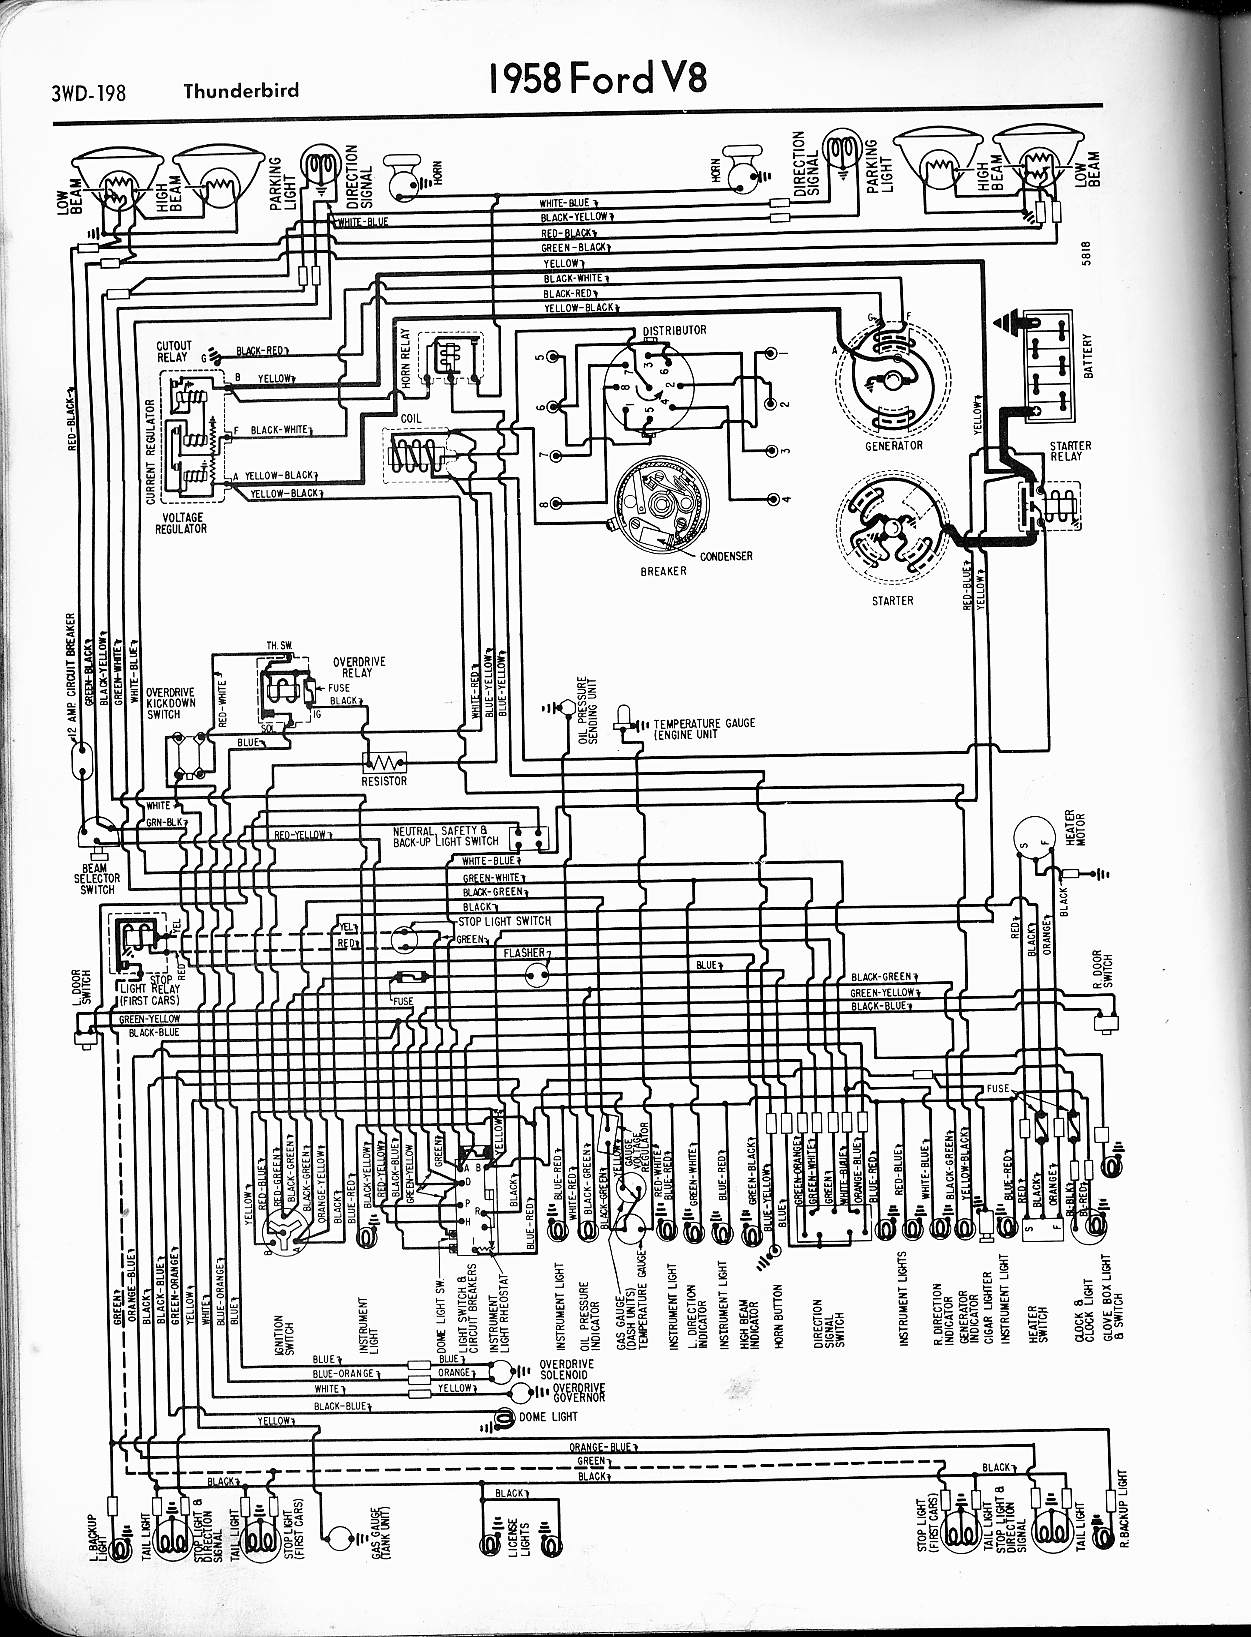 MWire5765 198 57 65 ford wiring diagrams 1959 ford wiring diagram at reclaimingppi.co